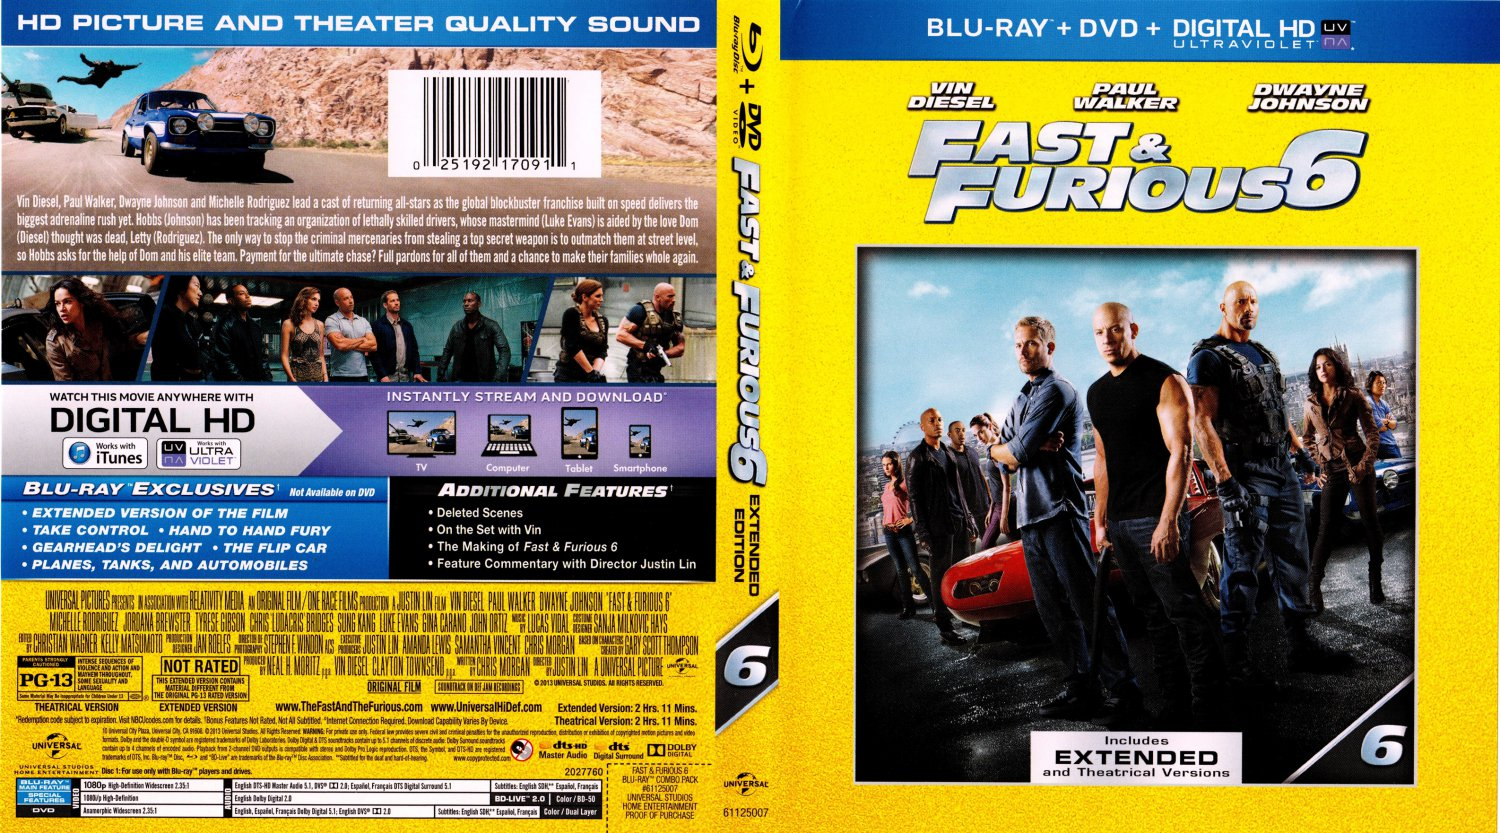 fast furious 6 movie blu ray scanned covers fast furious 6 2013 scanned bluray dvd cover. Black Bedroom Furniture Sets. Home Design Ideas